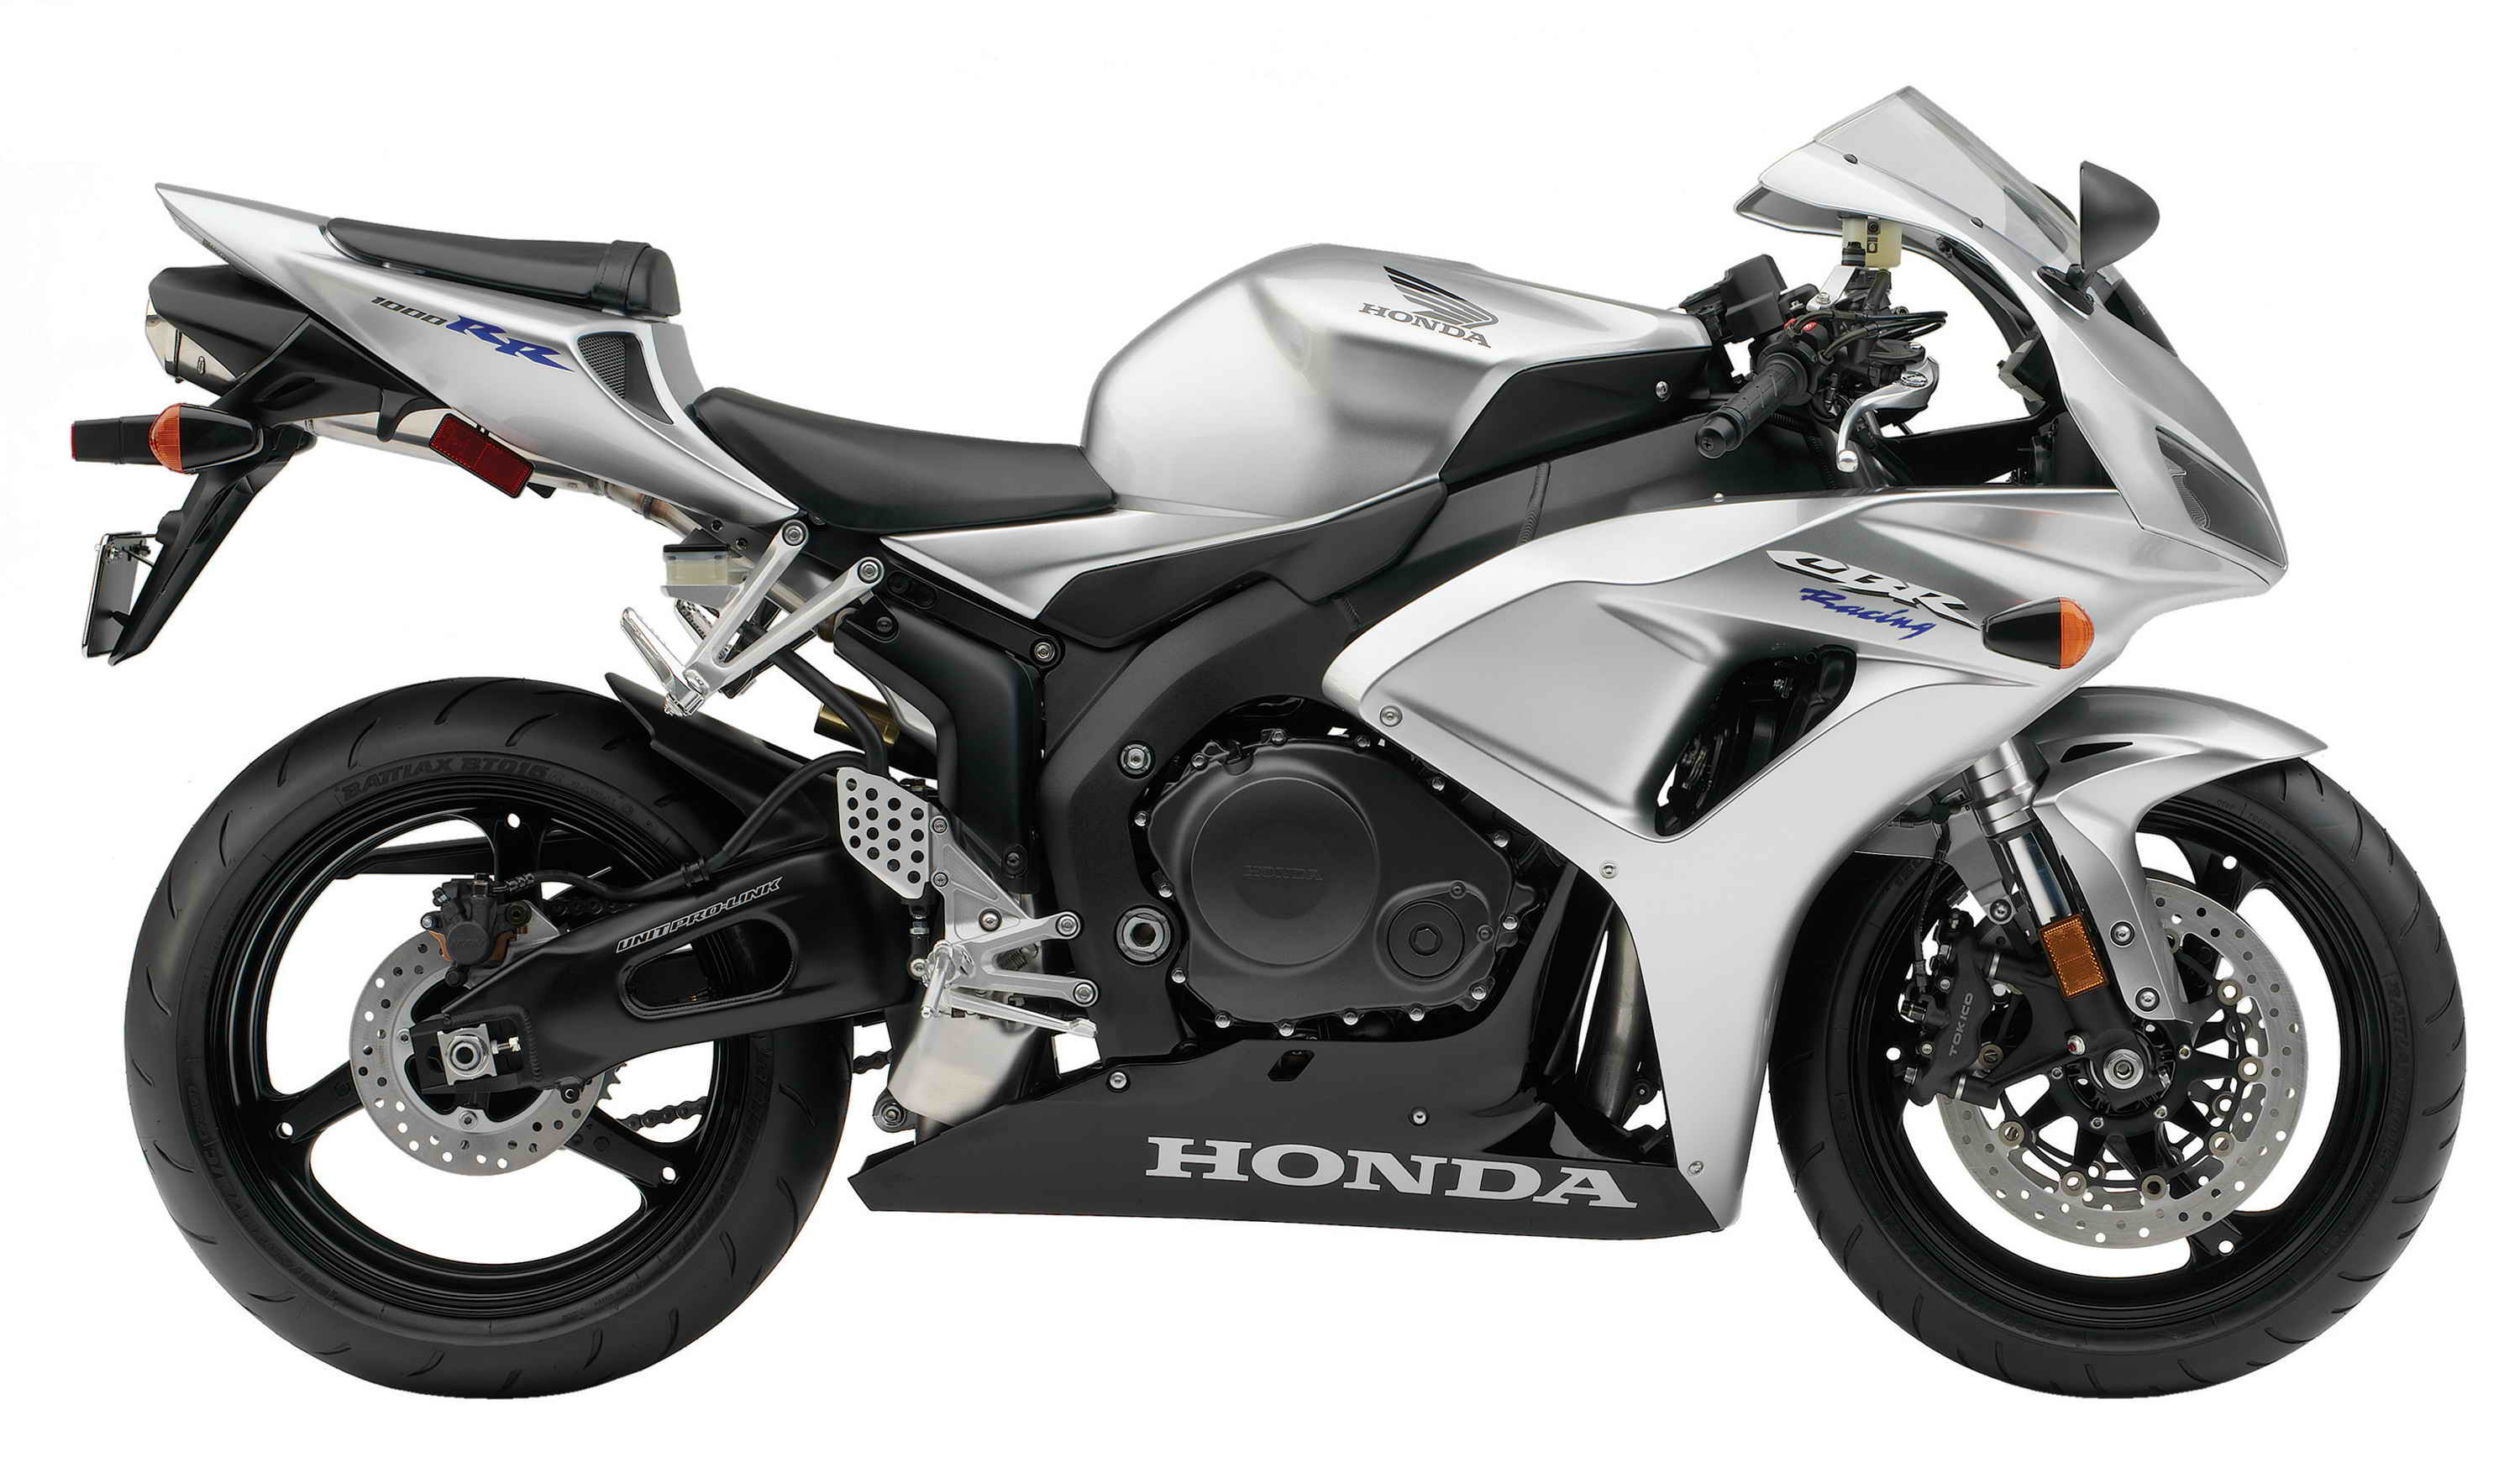 2007 Honda CBR1000RR | Top Speed